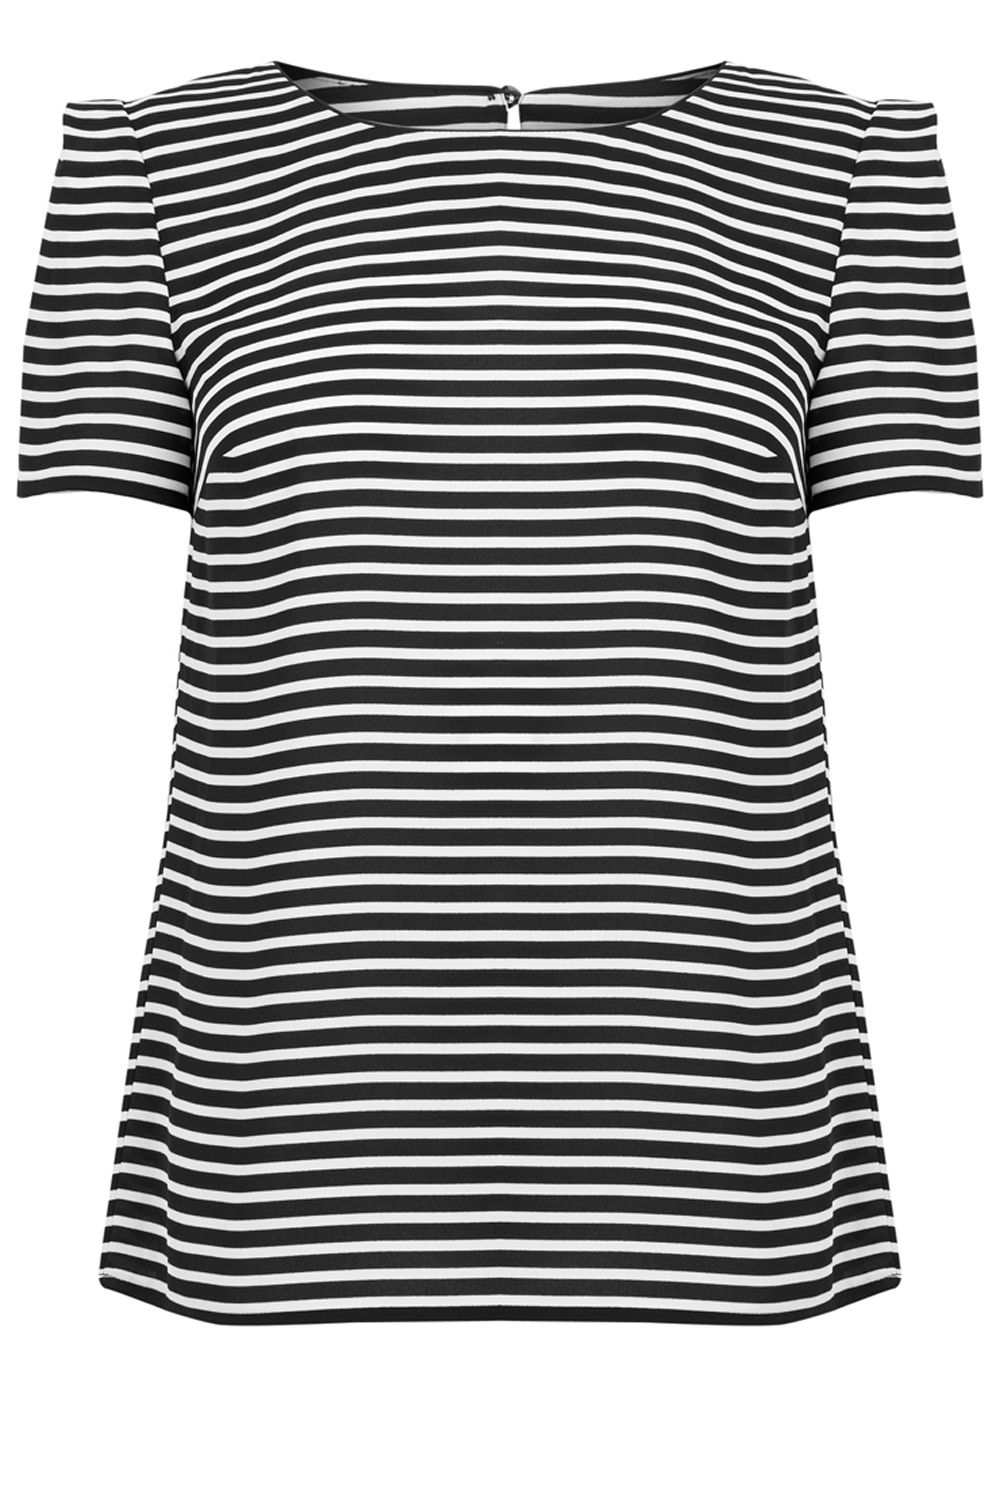 Oasis Stripe Formal Tee, Multi-Coloured